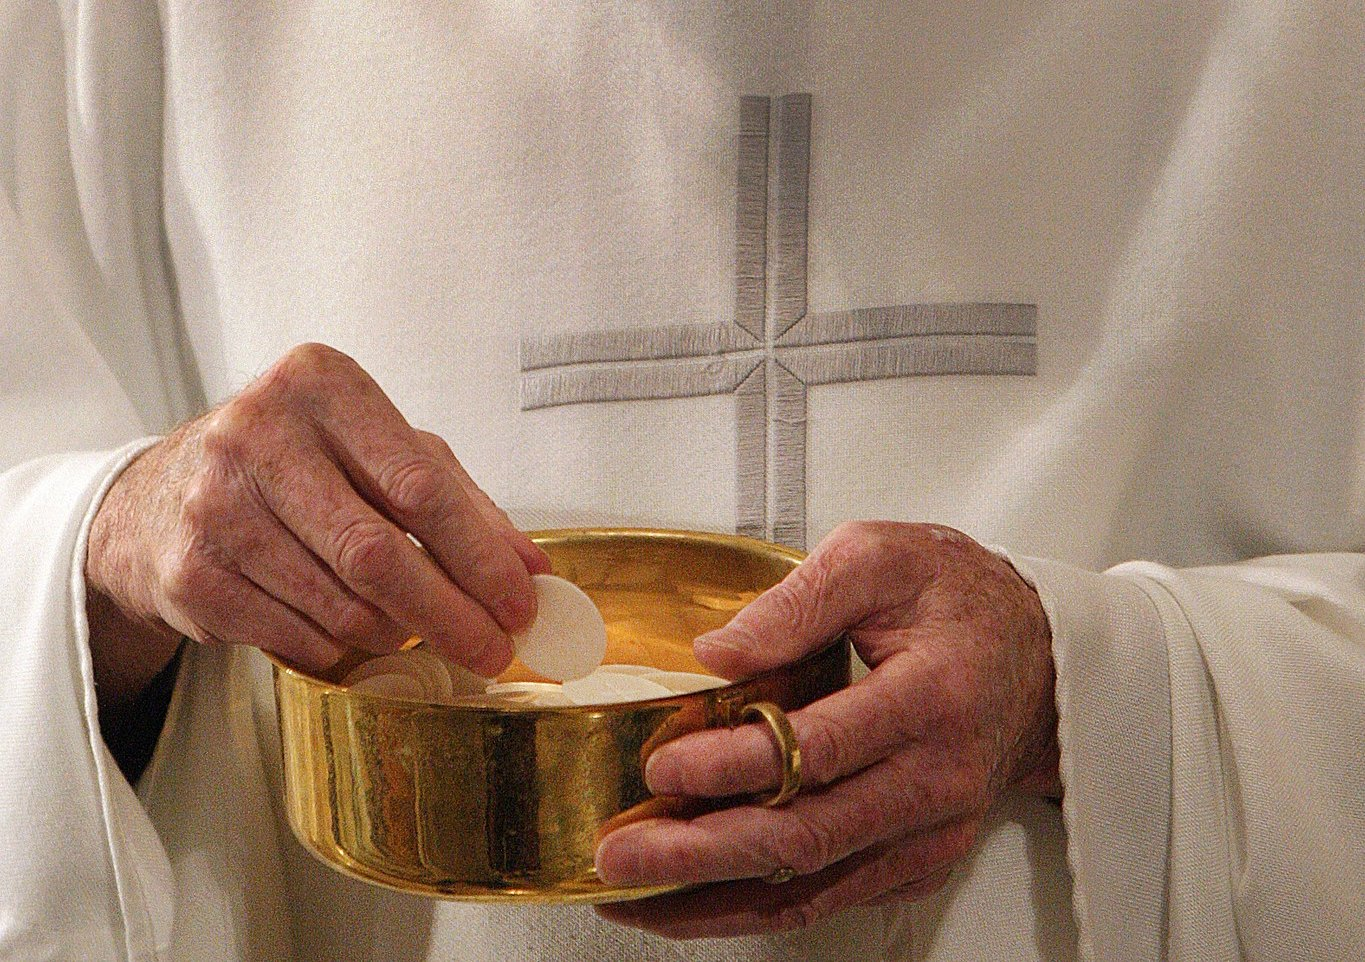 A priest prepares to distribute Communion during Mass in Washington.